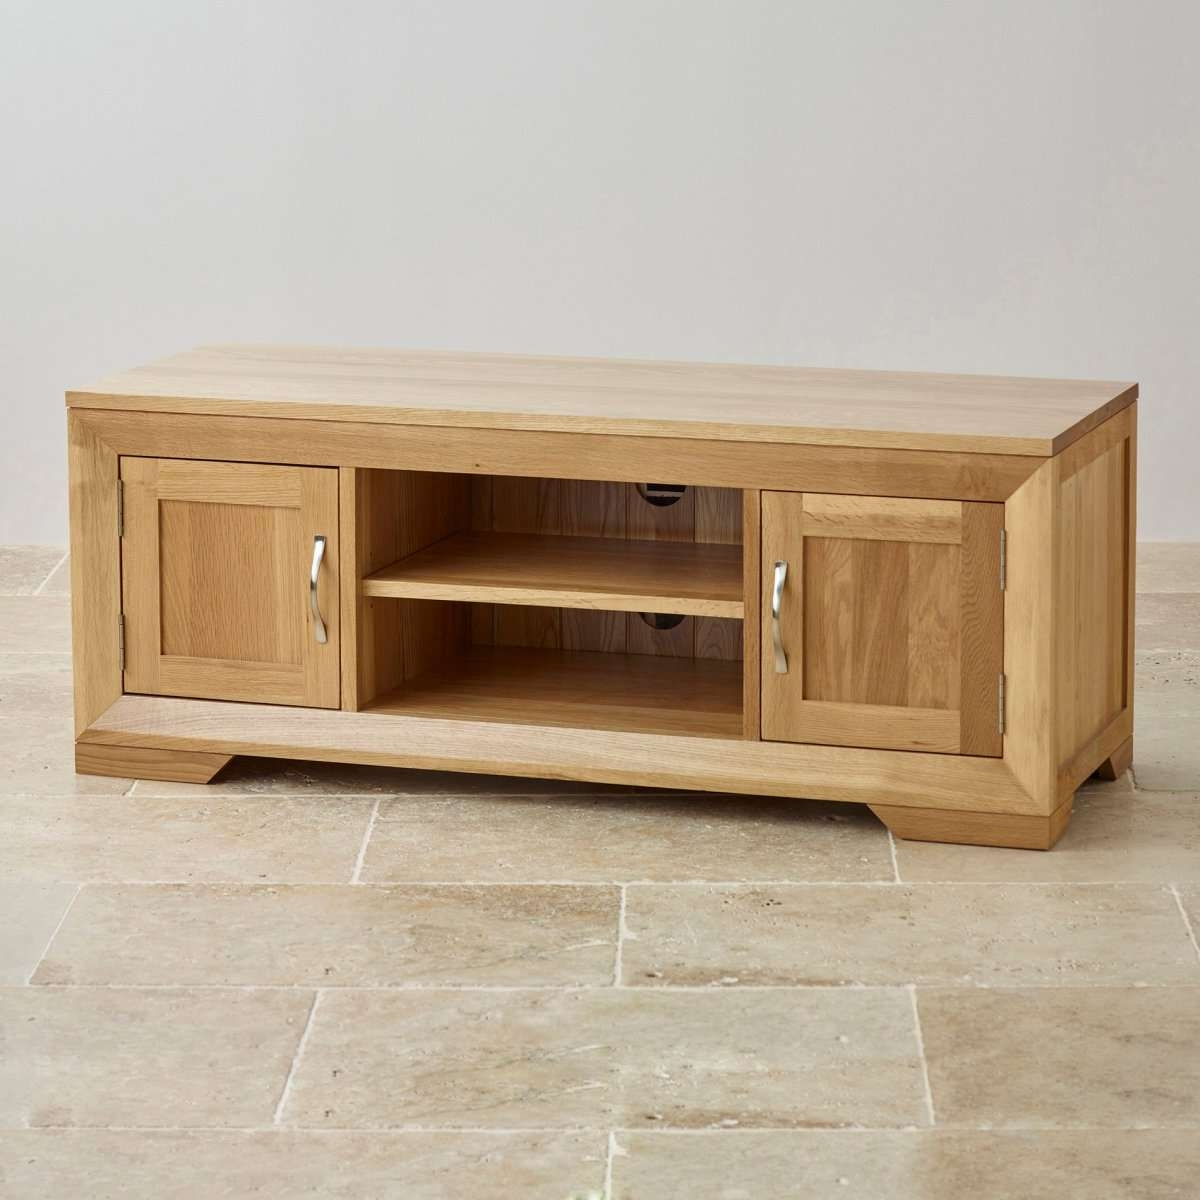 Unfinished Oak Tv Stand : Innovative Designs Oak Tv Console Regarding Cheap Oak Tv Stands (View 15 of 15)